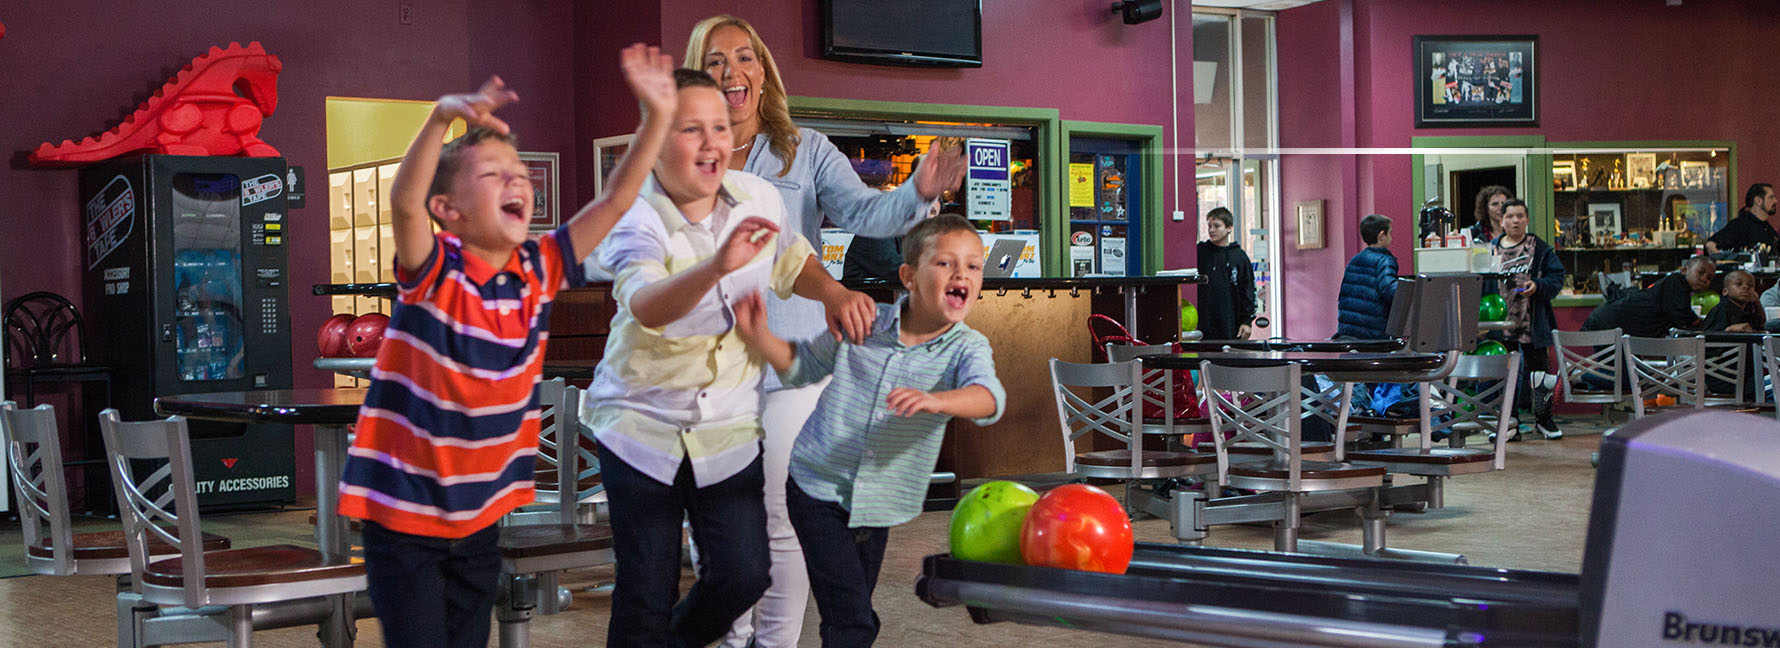 Kids and Parents Bowling